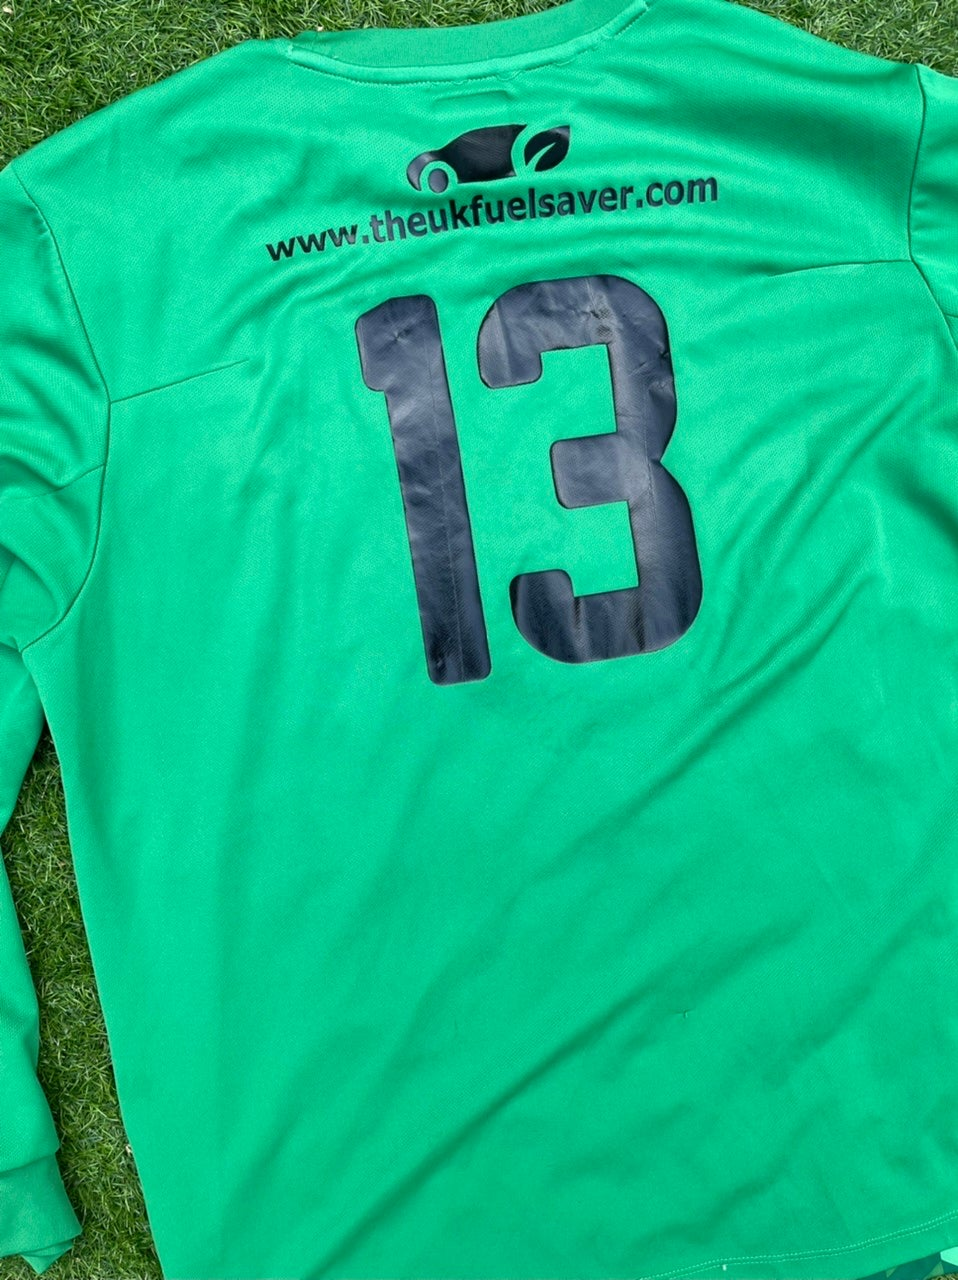 Player Issue 2013/14 Umbro Home Keeper Shirt